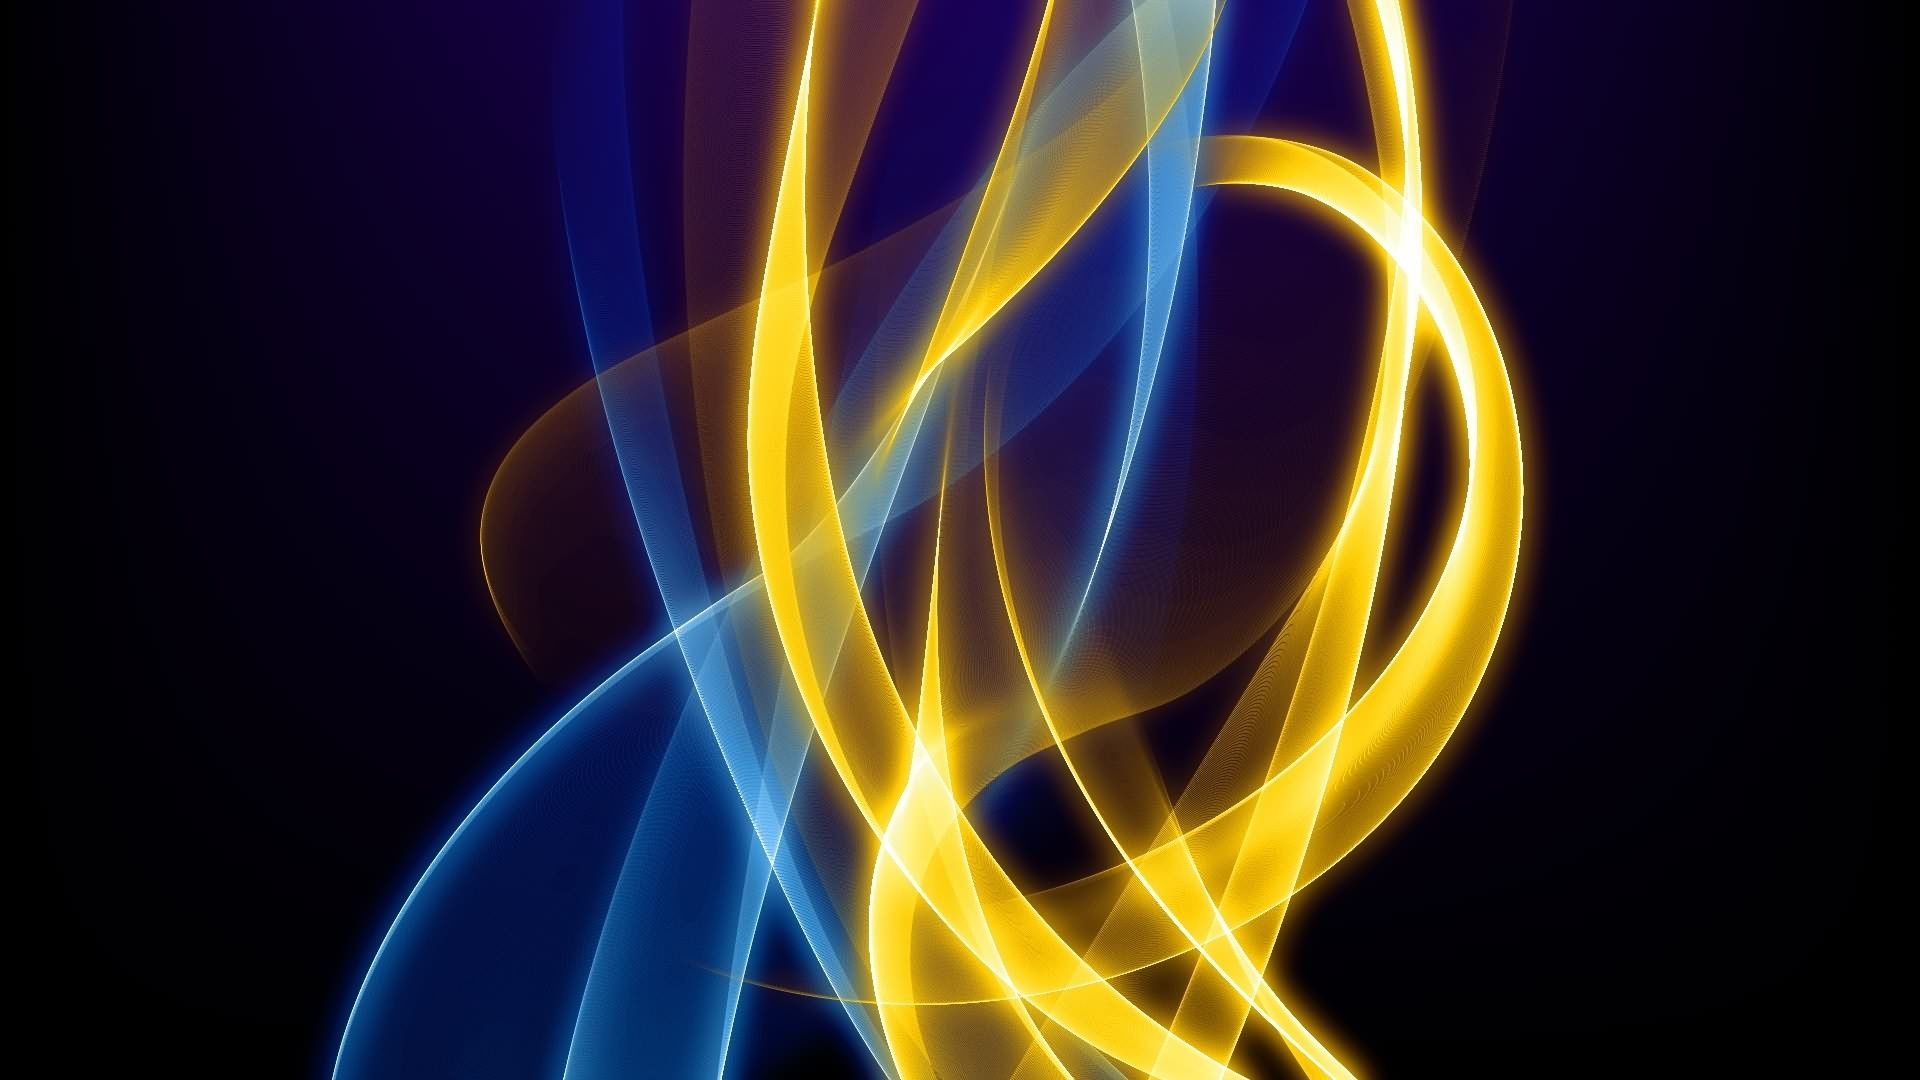 Blue And Gold Backgrounds 1920x1080